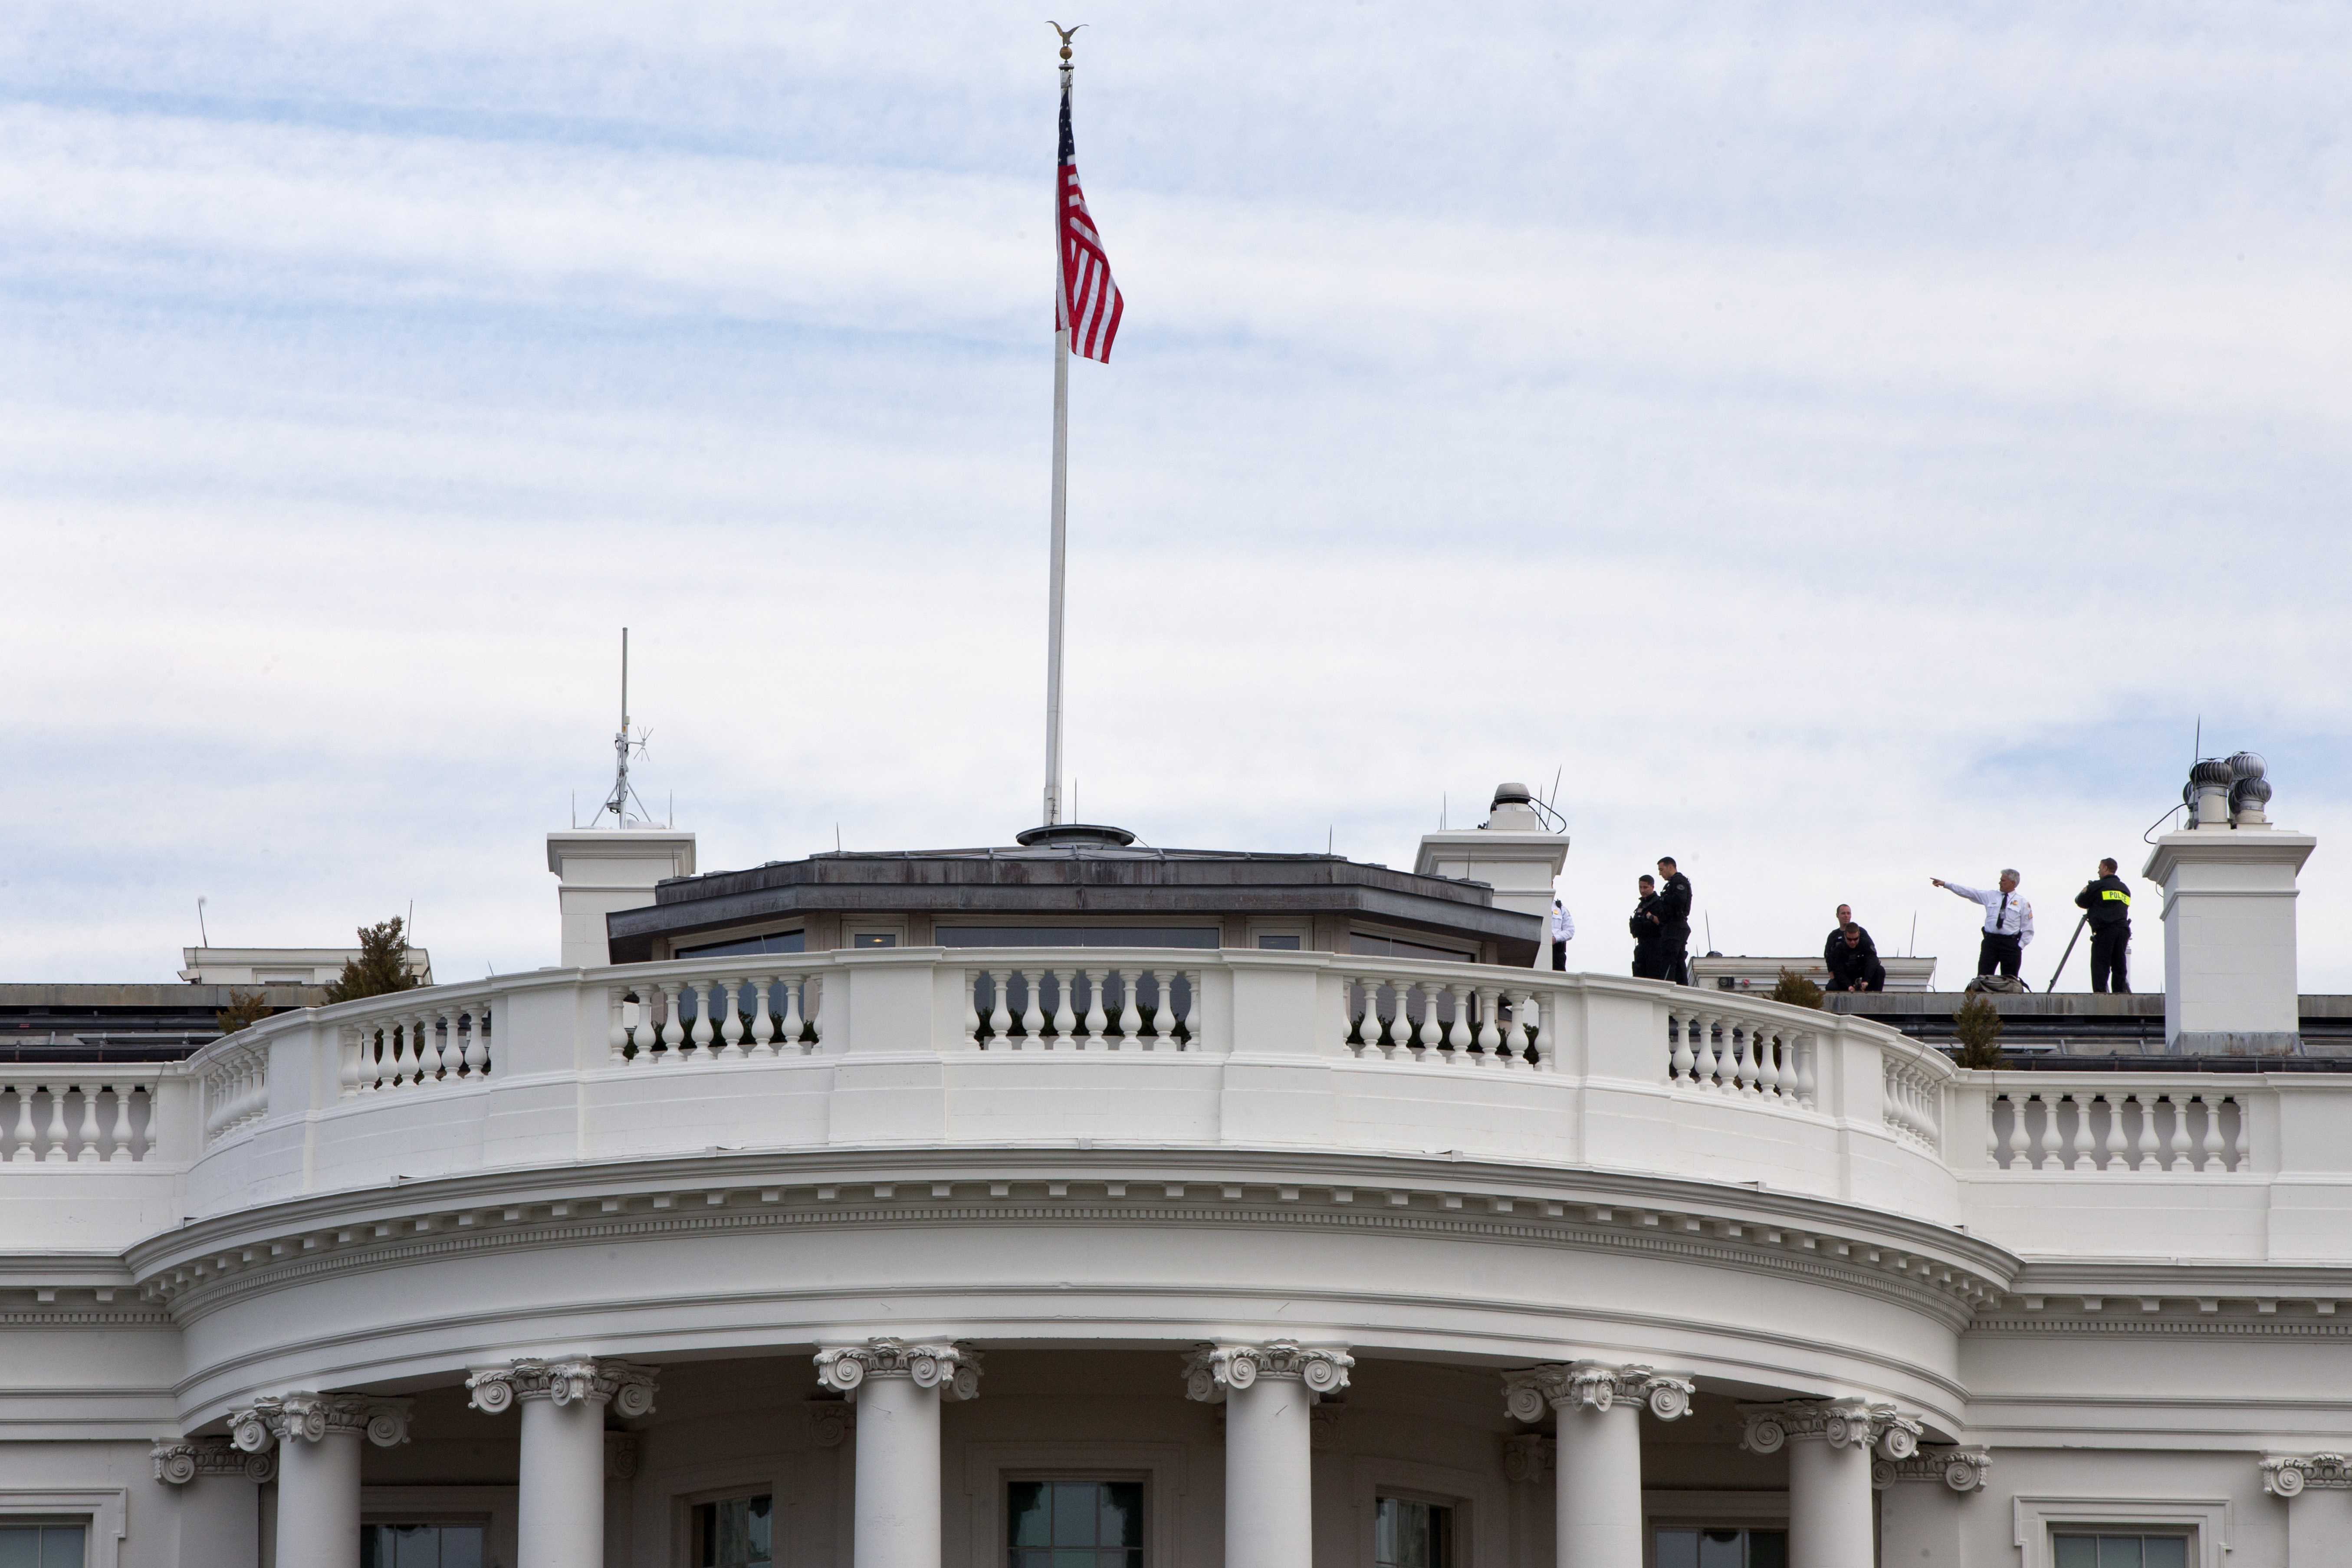 Secret Service surveillance tapes may have been erased